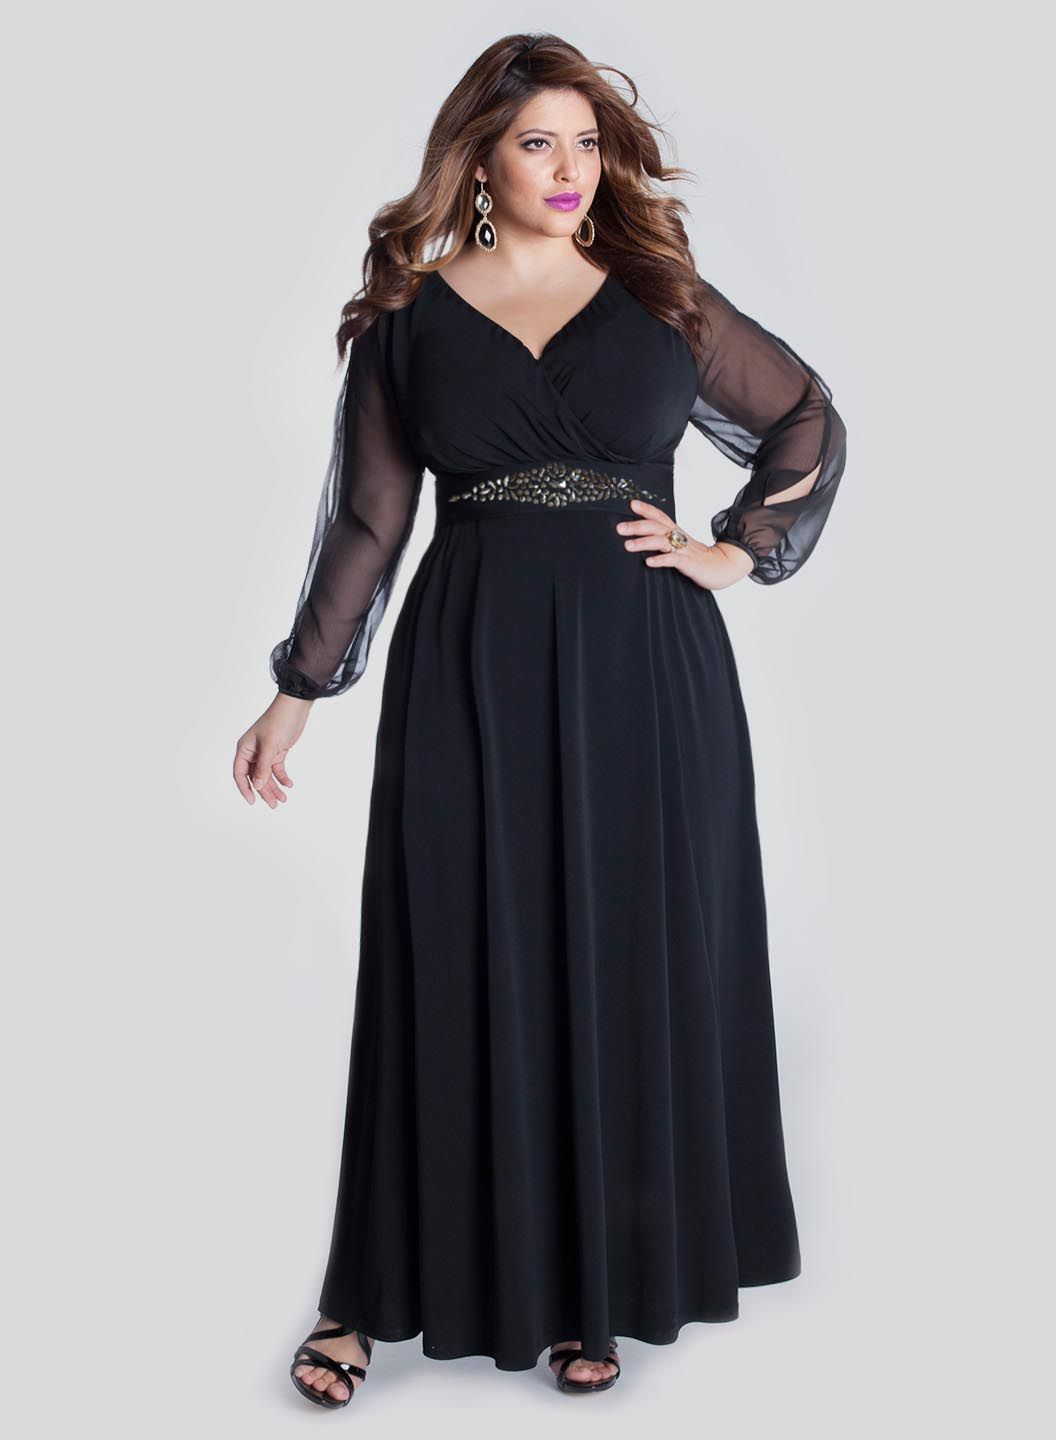 4cfdaeb096e39 Vintage Inspired 1940s Plus Size Formal dress. I have a vintage dress just  like this one. It so so elegant and fun to dance it.  1940sfashion  plussize